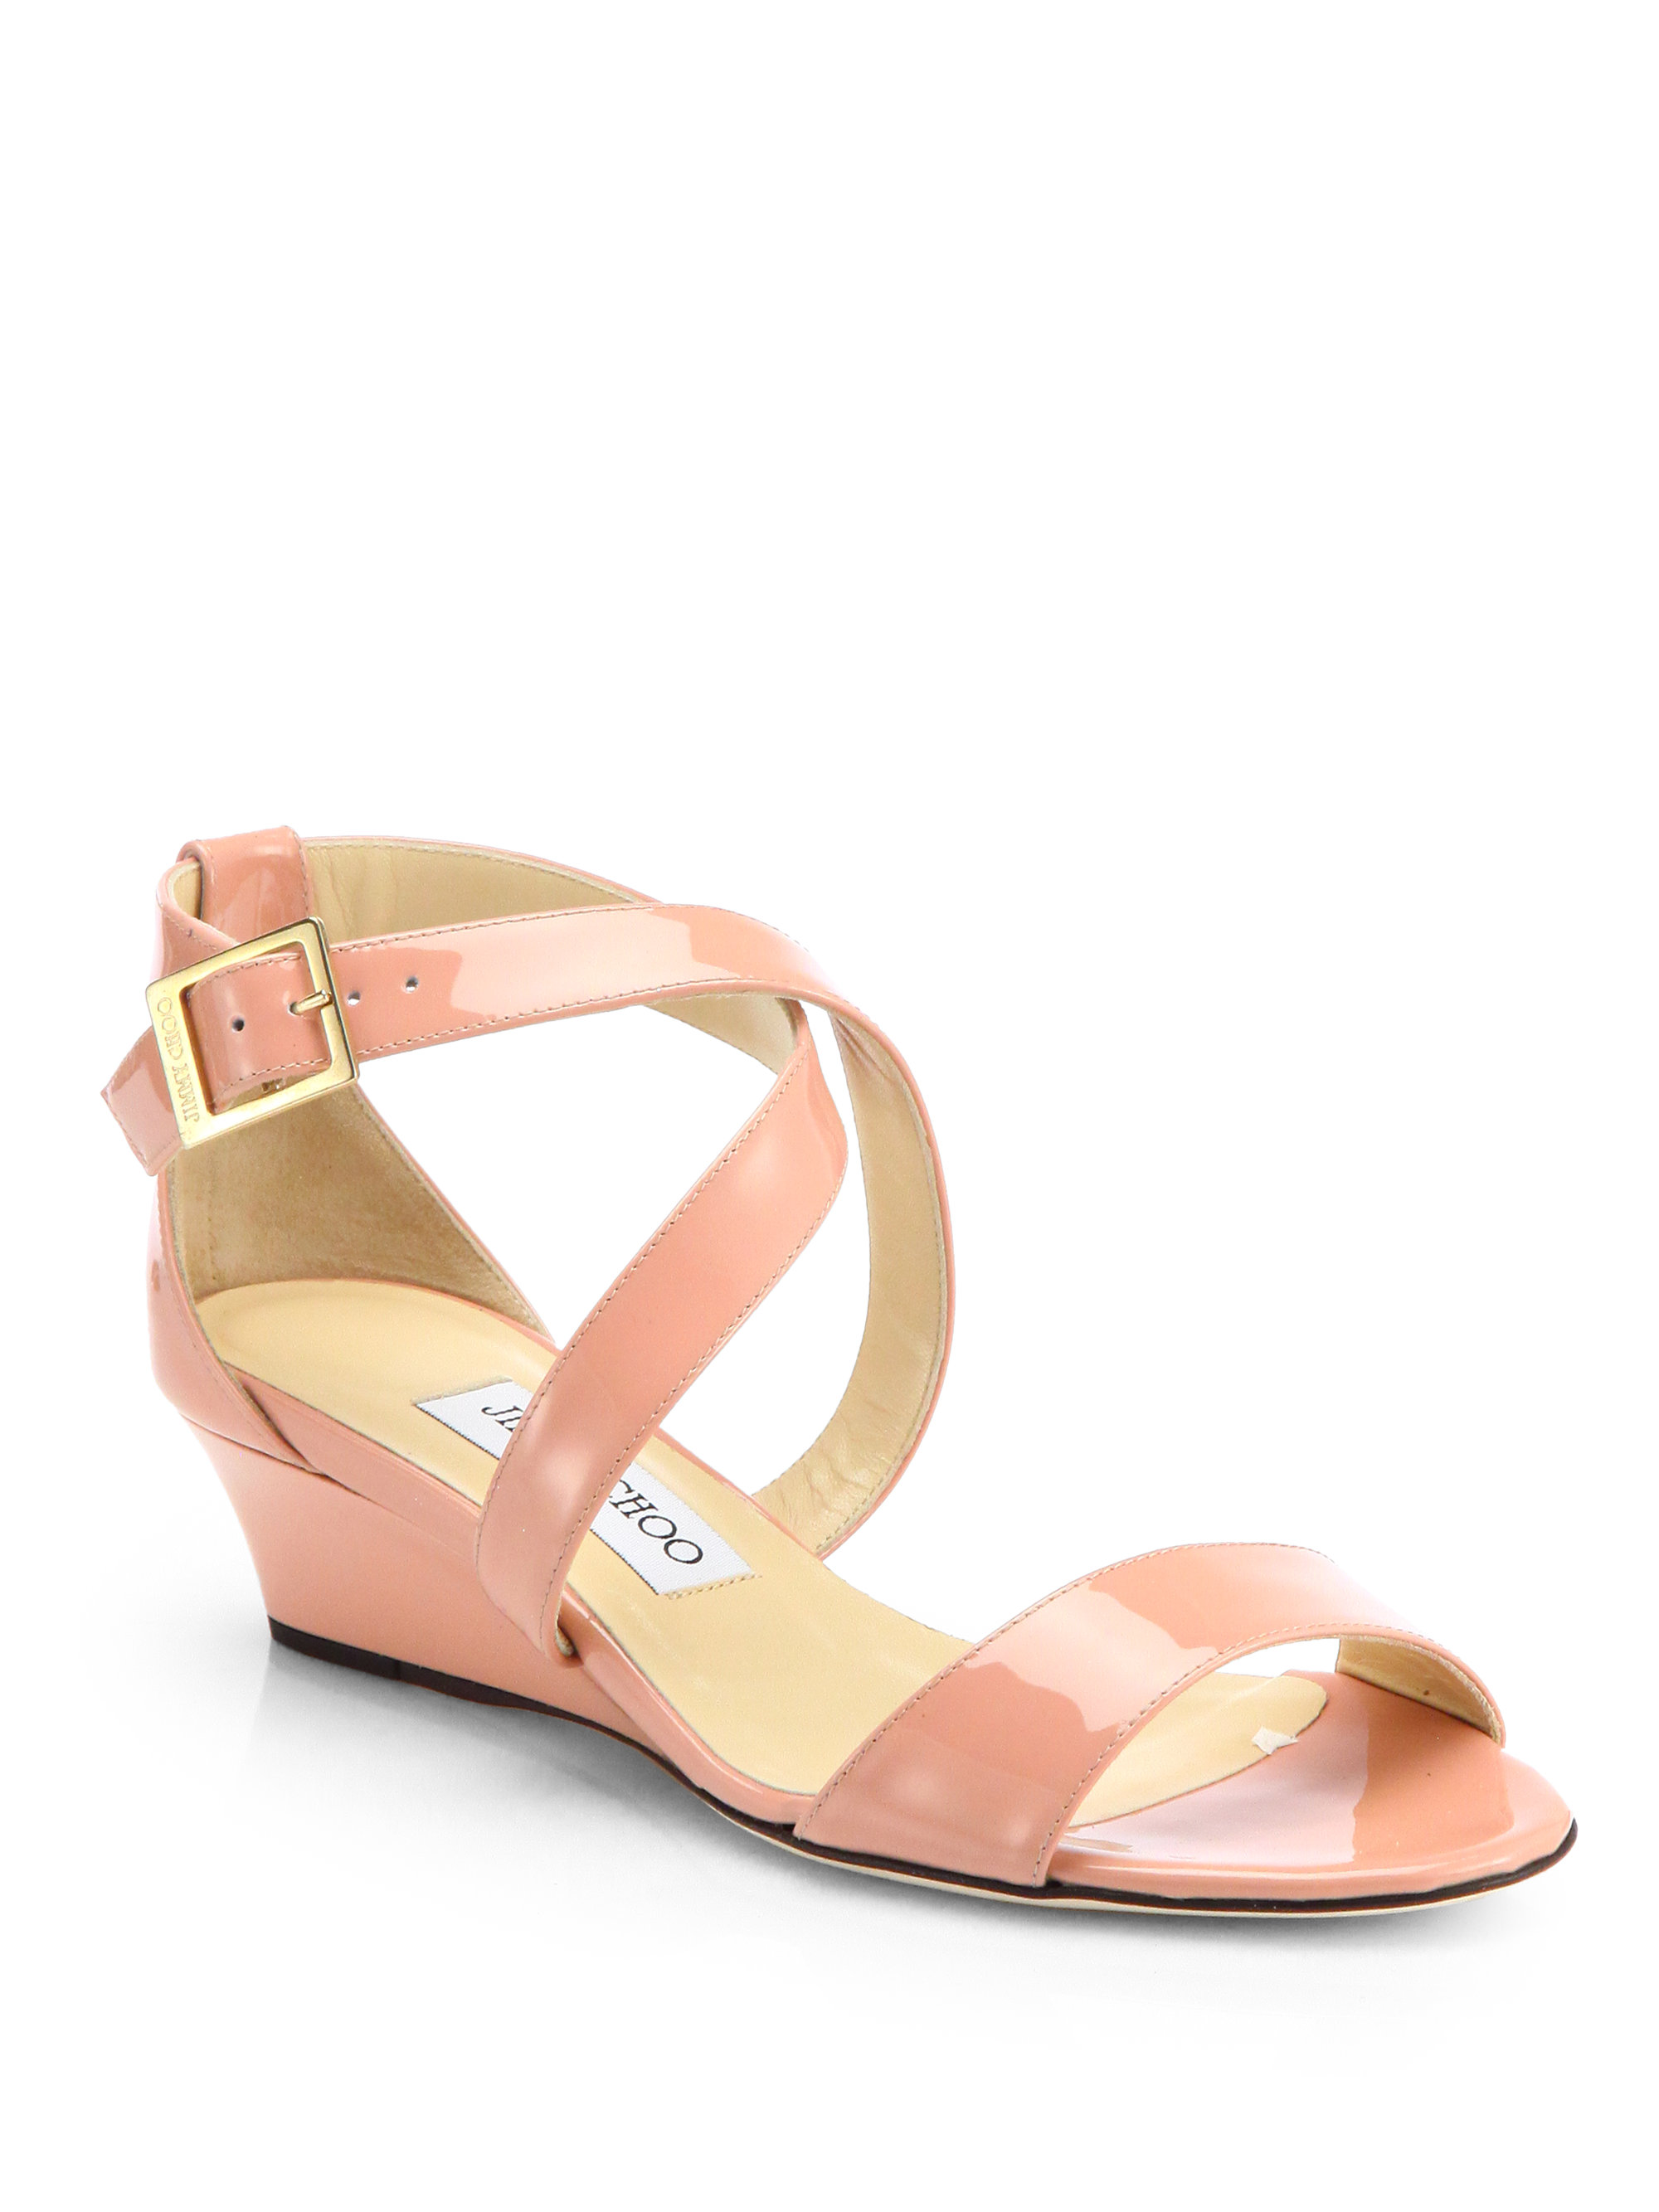 c3b0e85dda4b Gallery. Previously sold at  Saks Fifth Avenue · Women s Rope Wedges ...